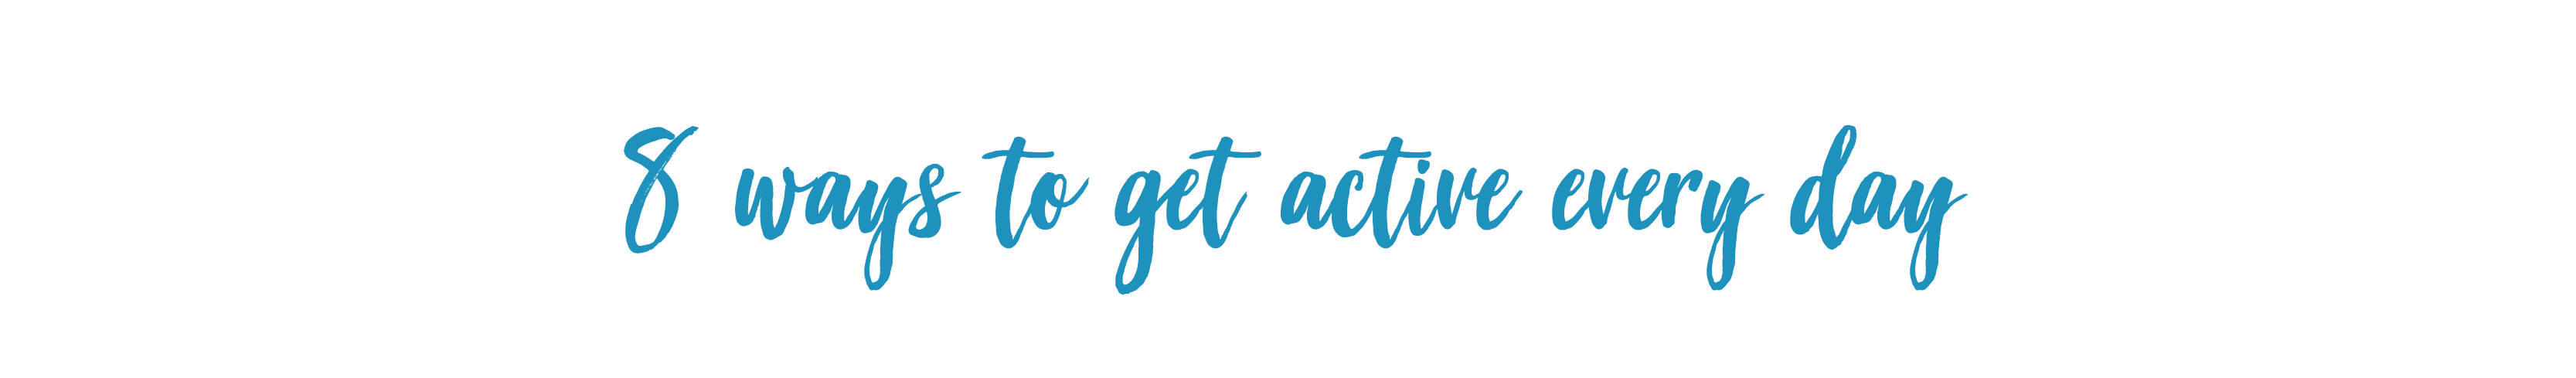 8 ways to get active every day